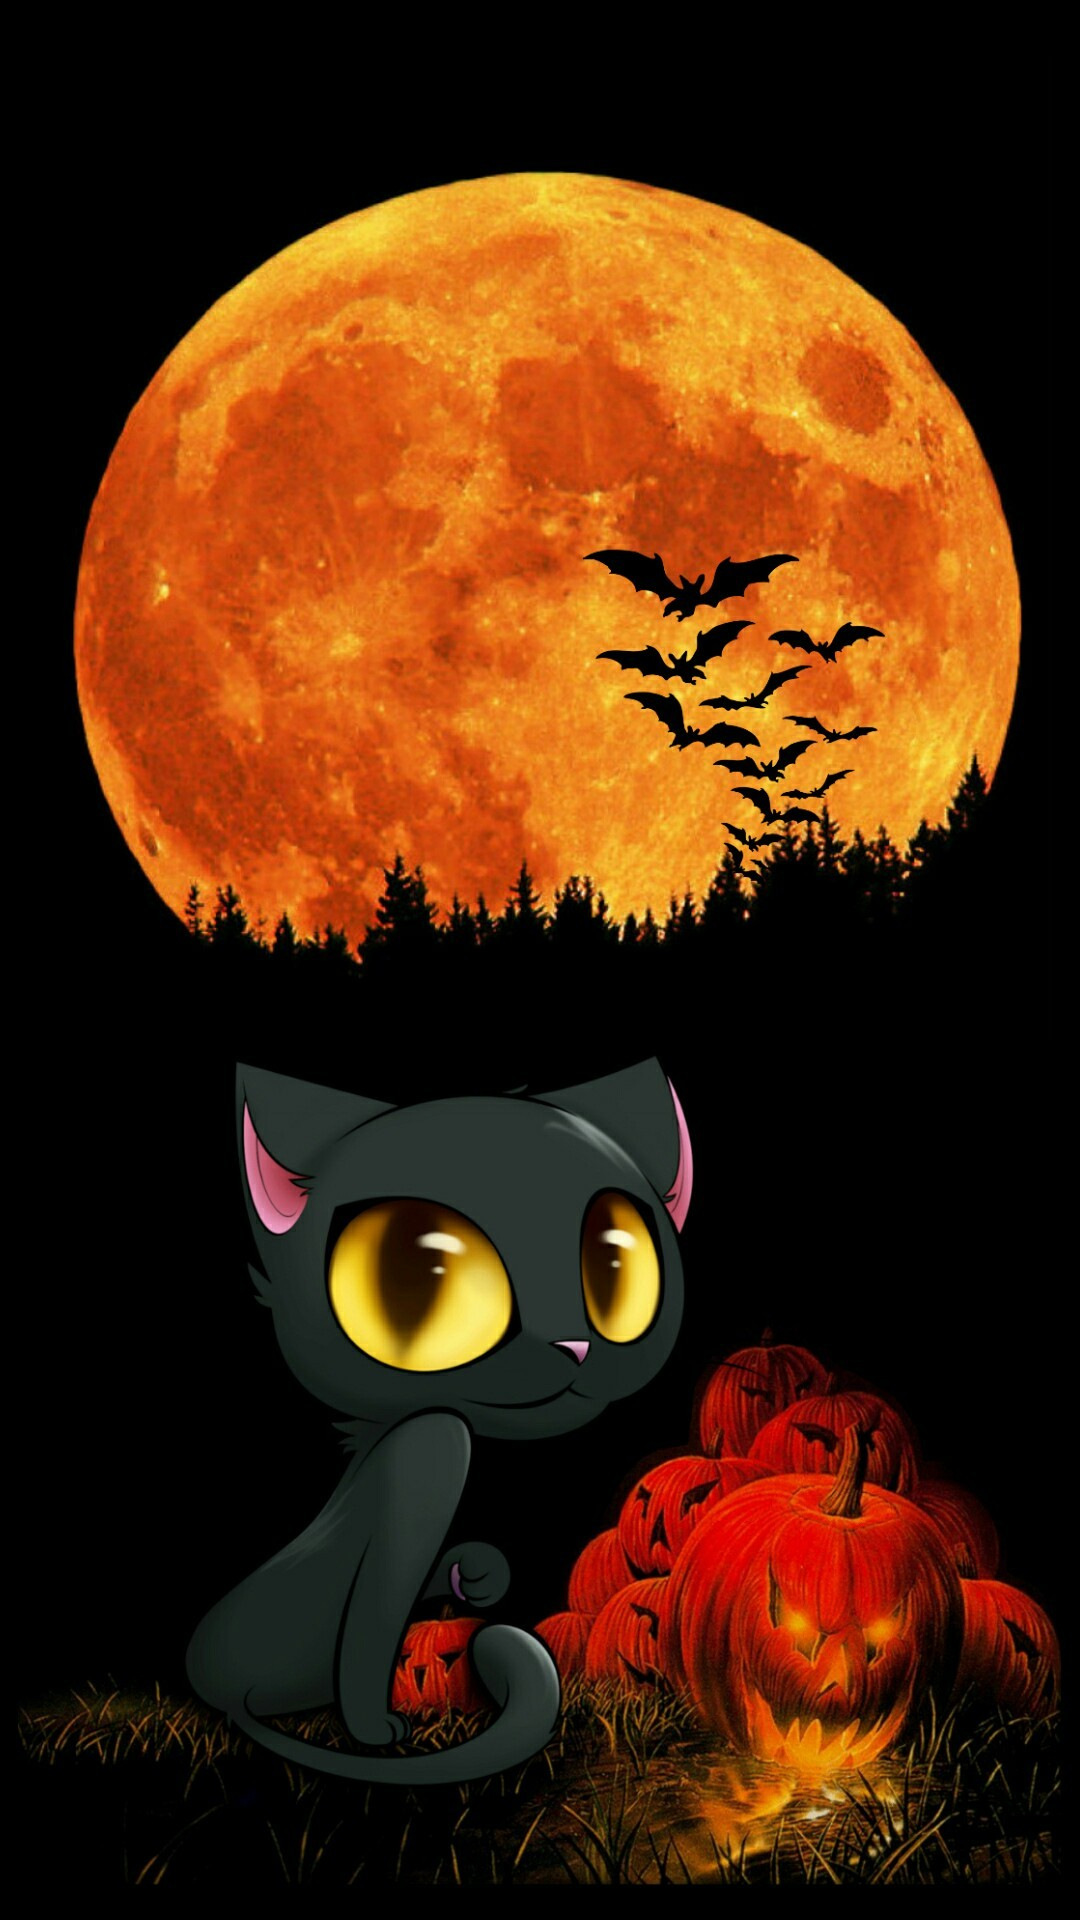 Snoopy Wallpaper Iphone 6 Snoopy Halloween Wallpaper 52 Images